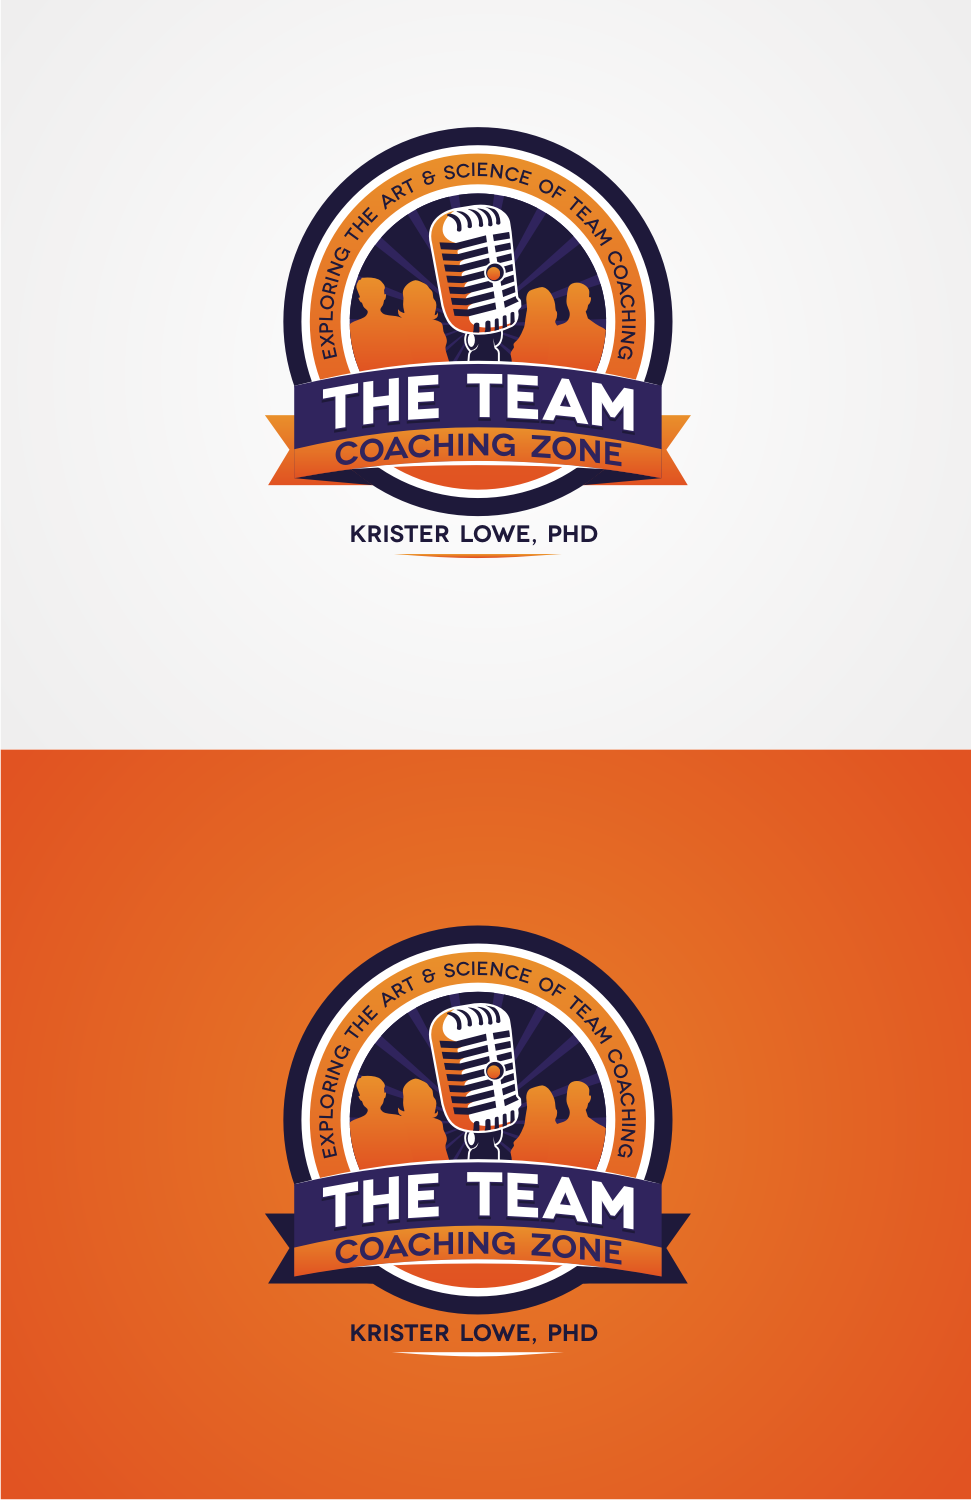 Design an inspiring/dyanmic logo for my podcast: The Team Coaching Zone